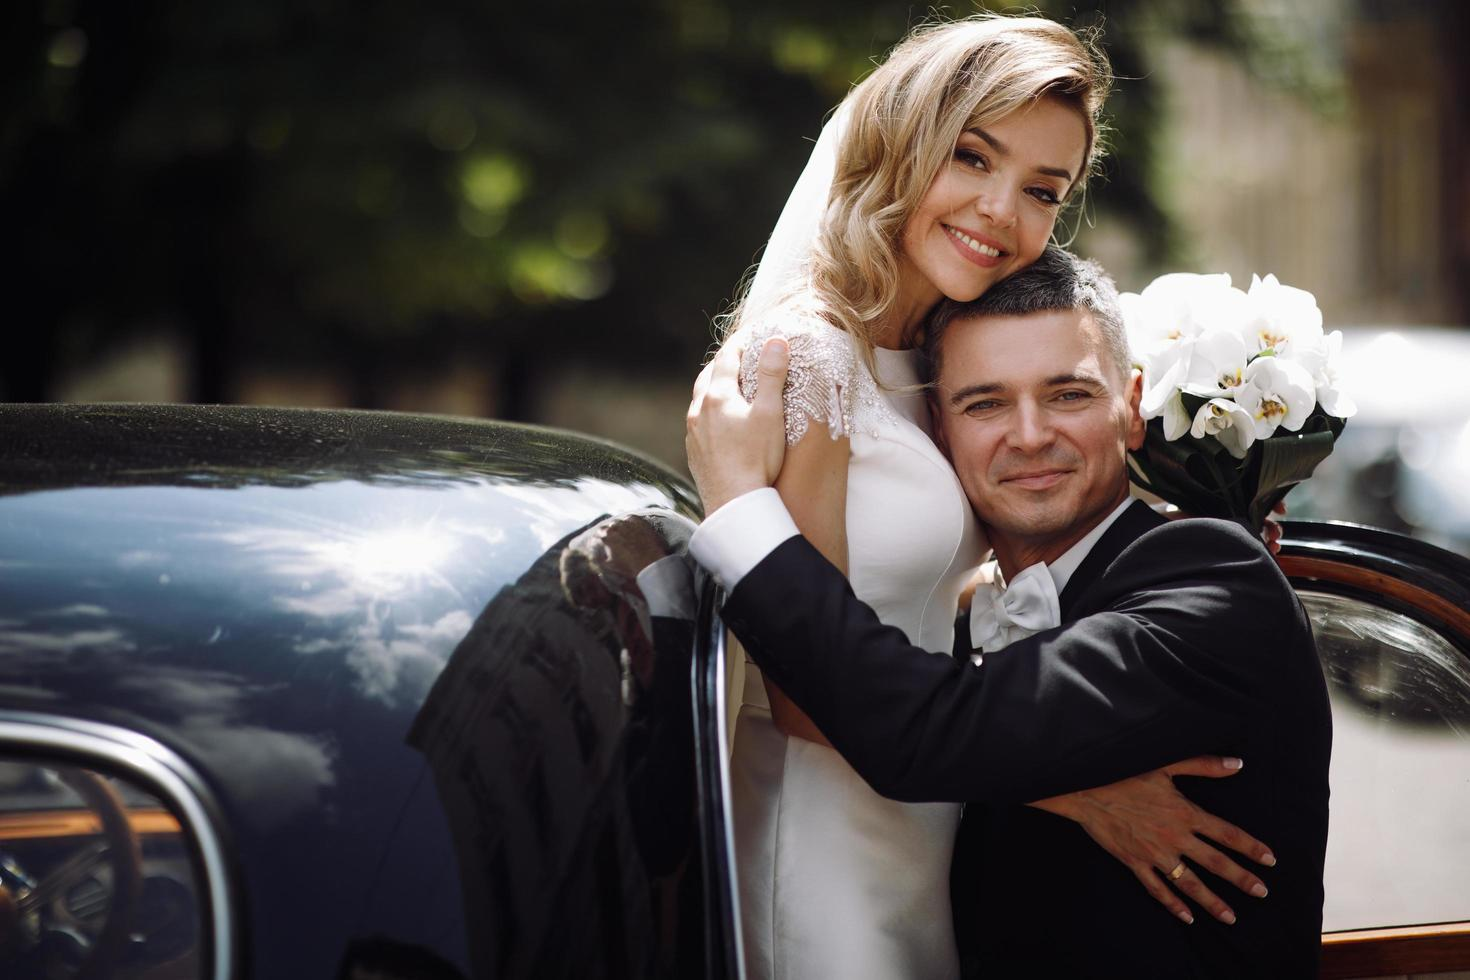 Groom holds bride in his arms photo